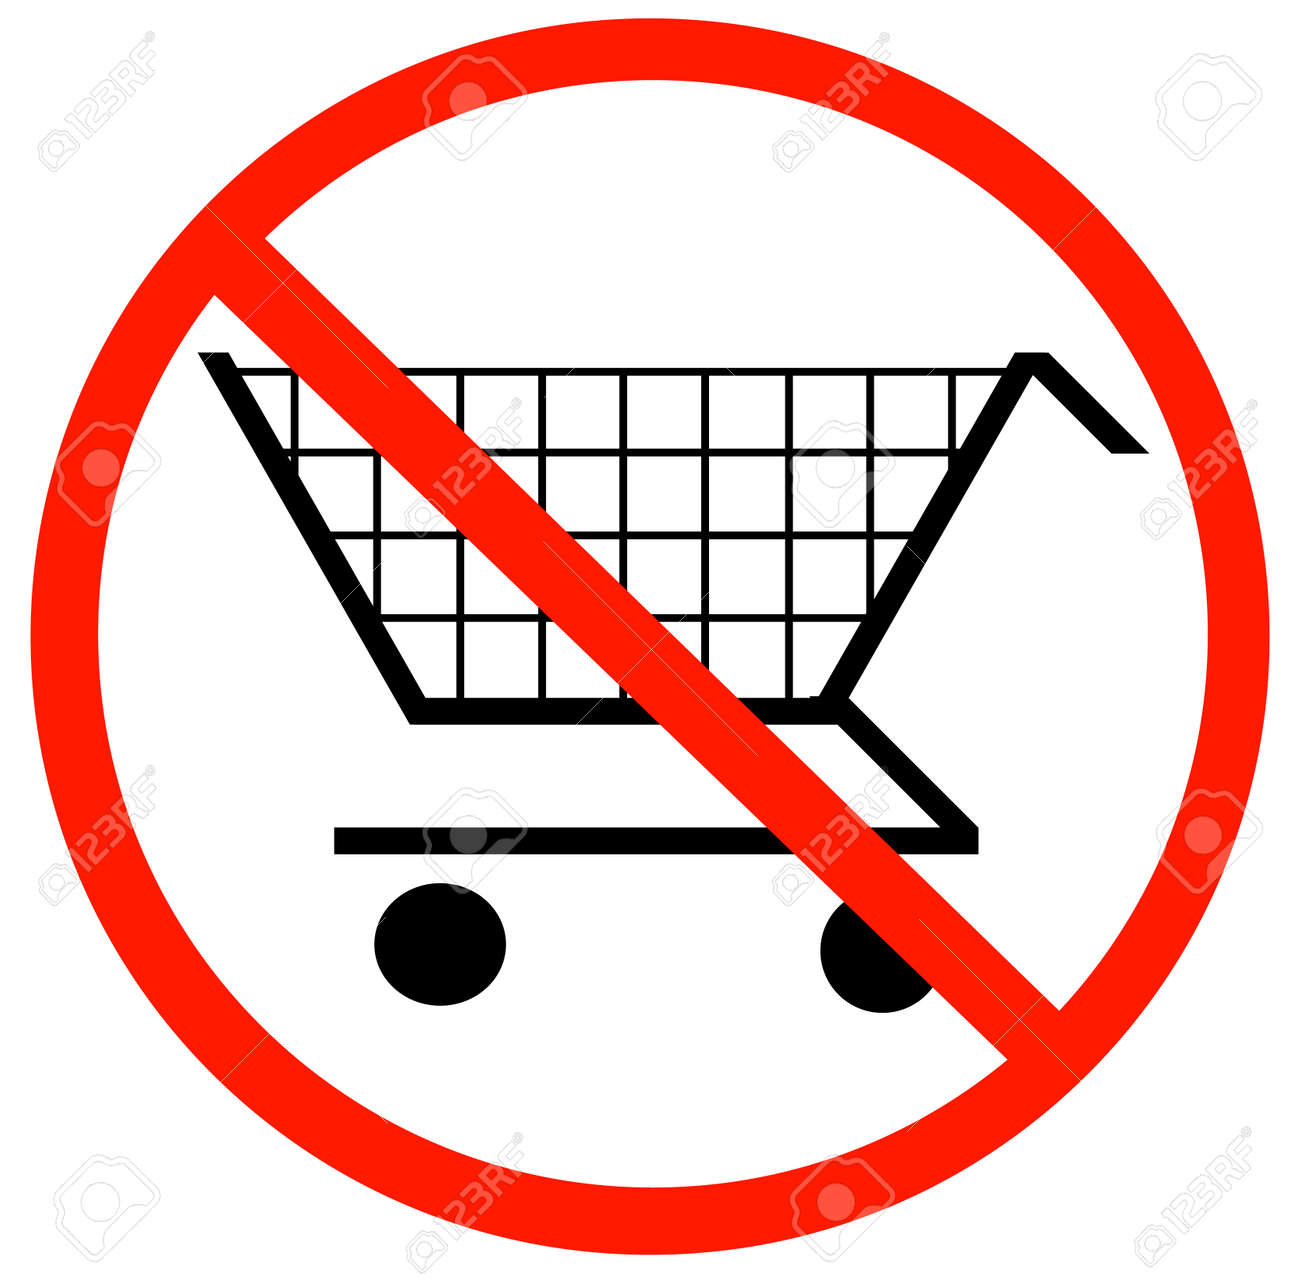 shopping cart with not allowed symbol - no shopping carts allowed Stock Vector - 3410313